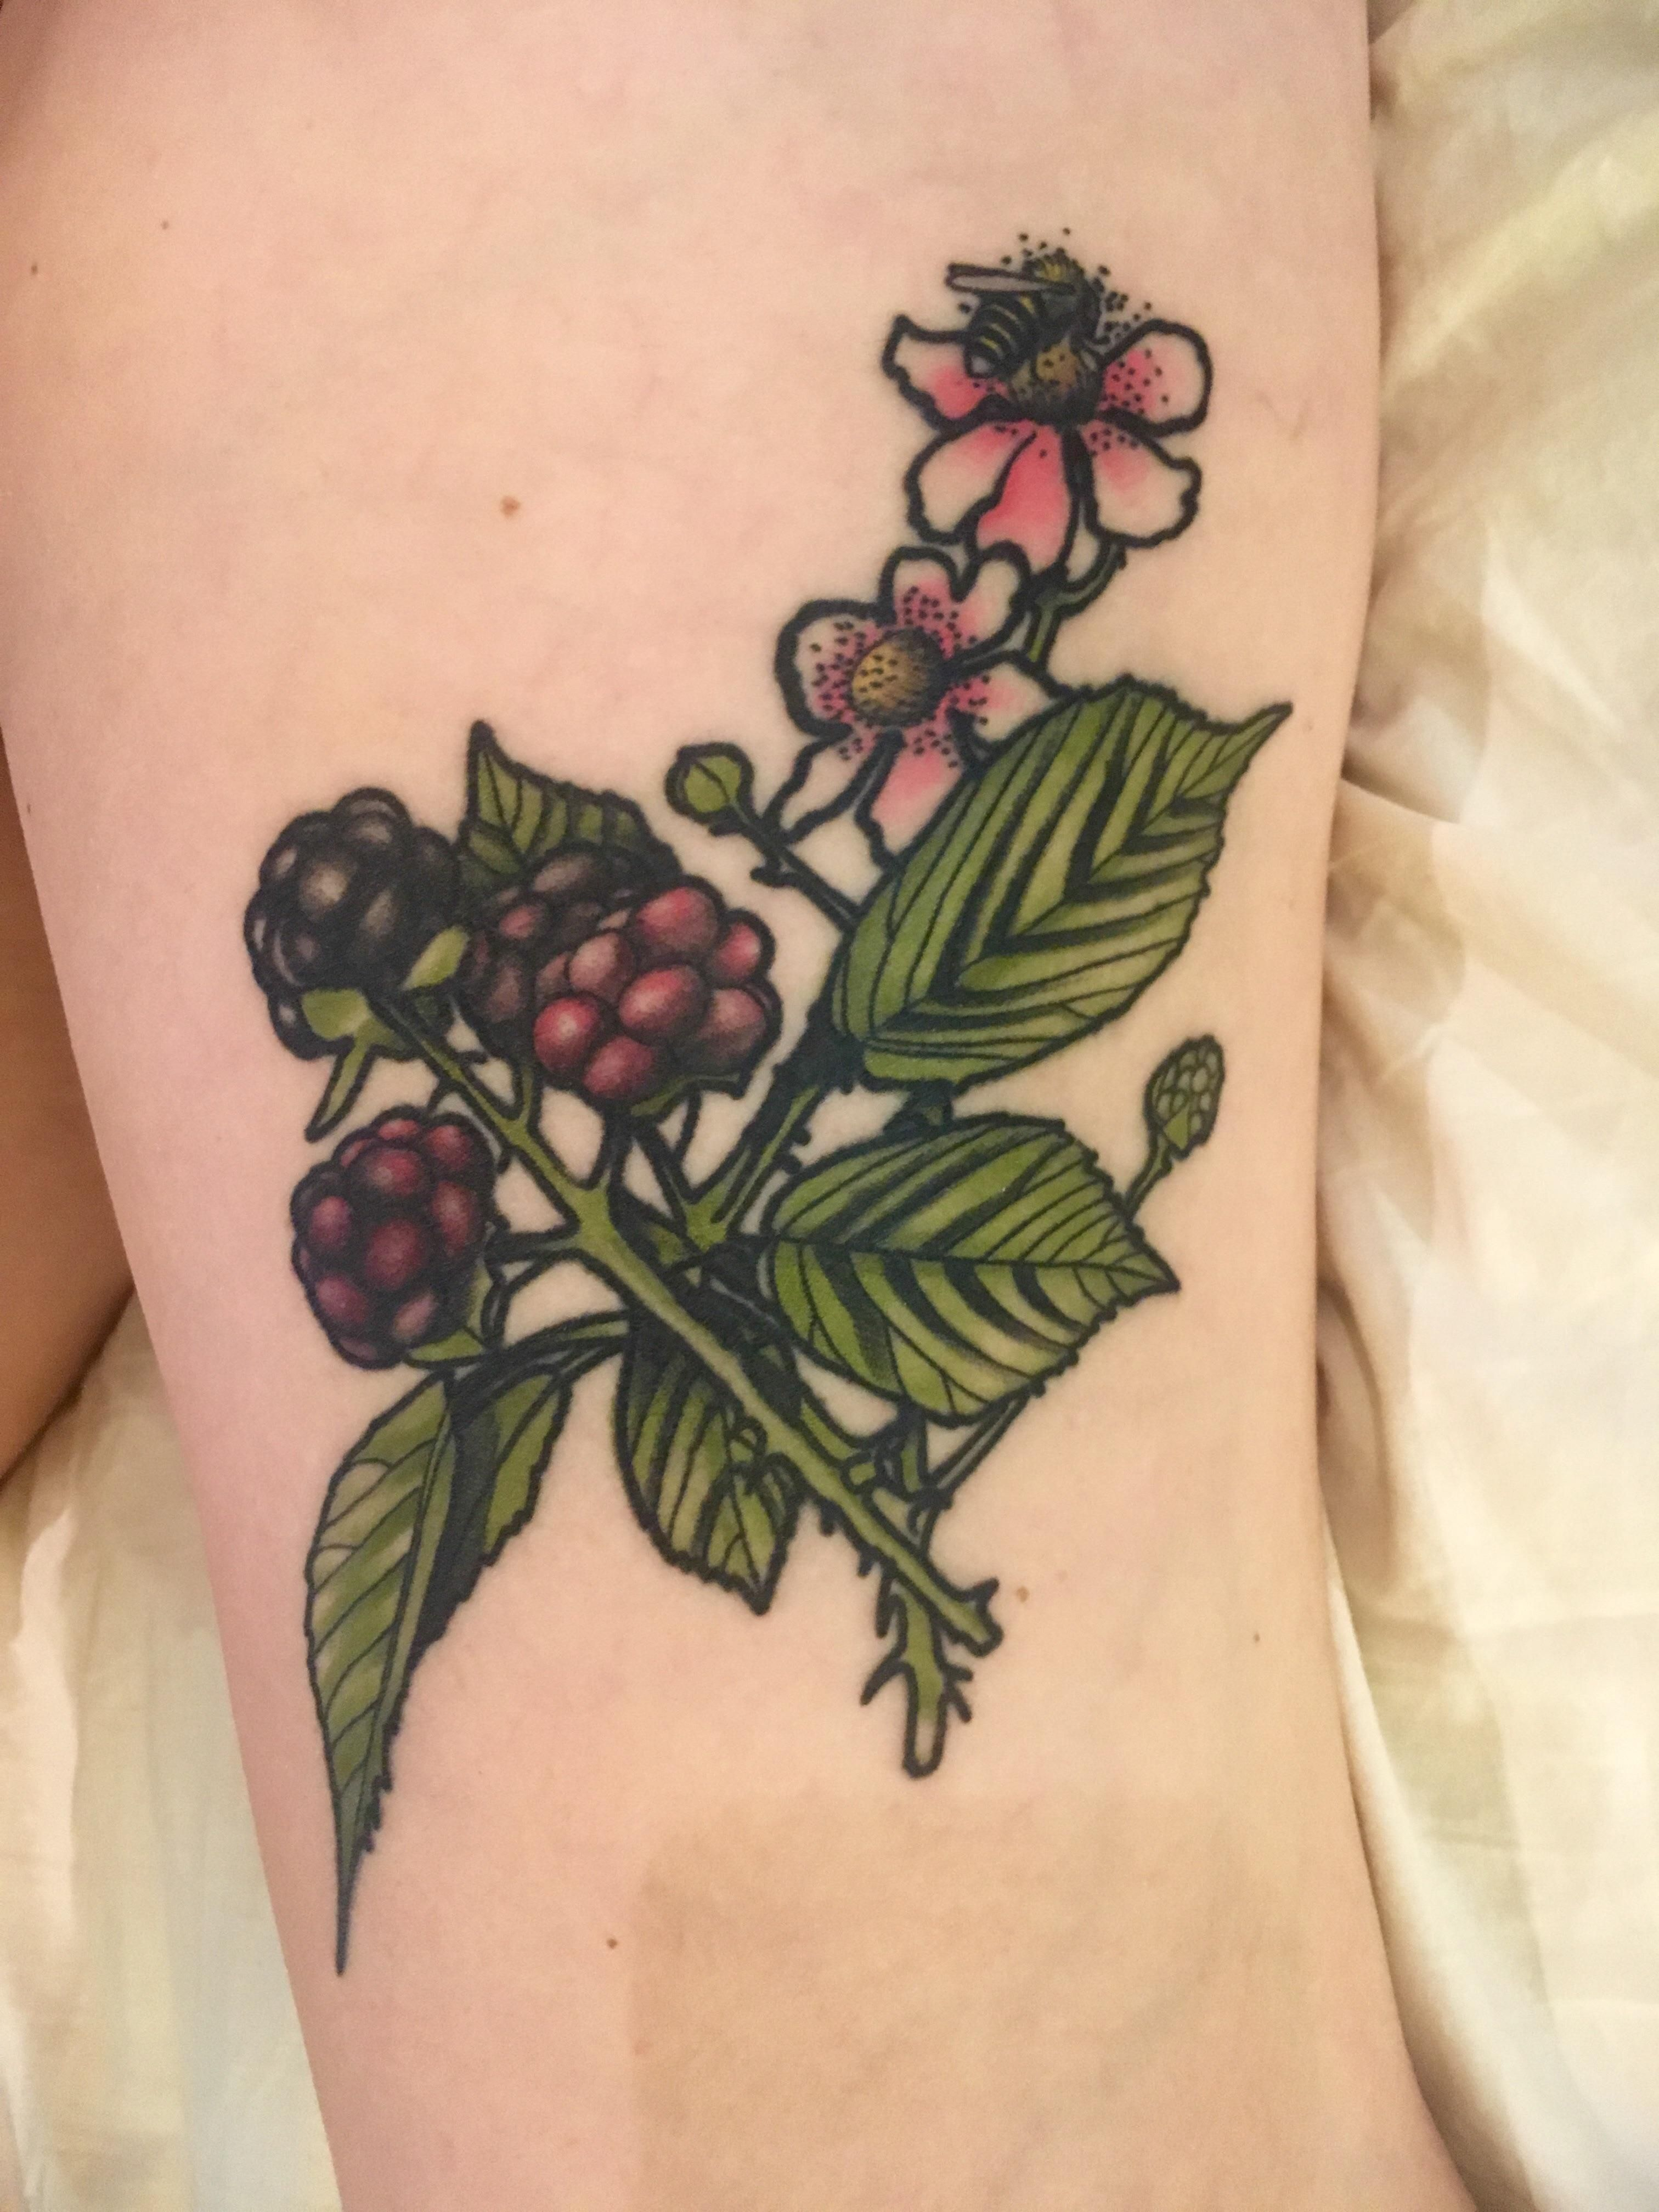 Blackberries with a honeybee on my thigh dedicated to my